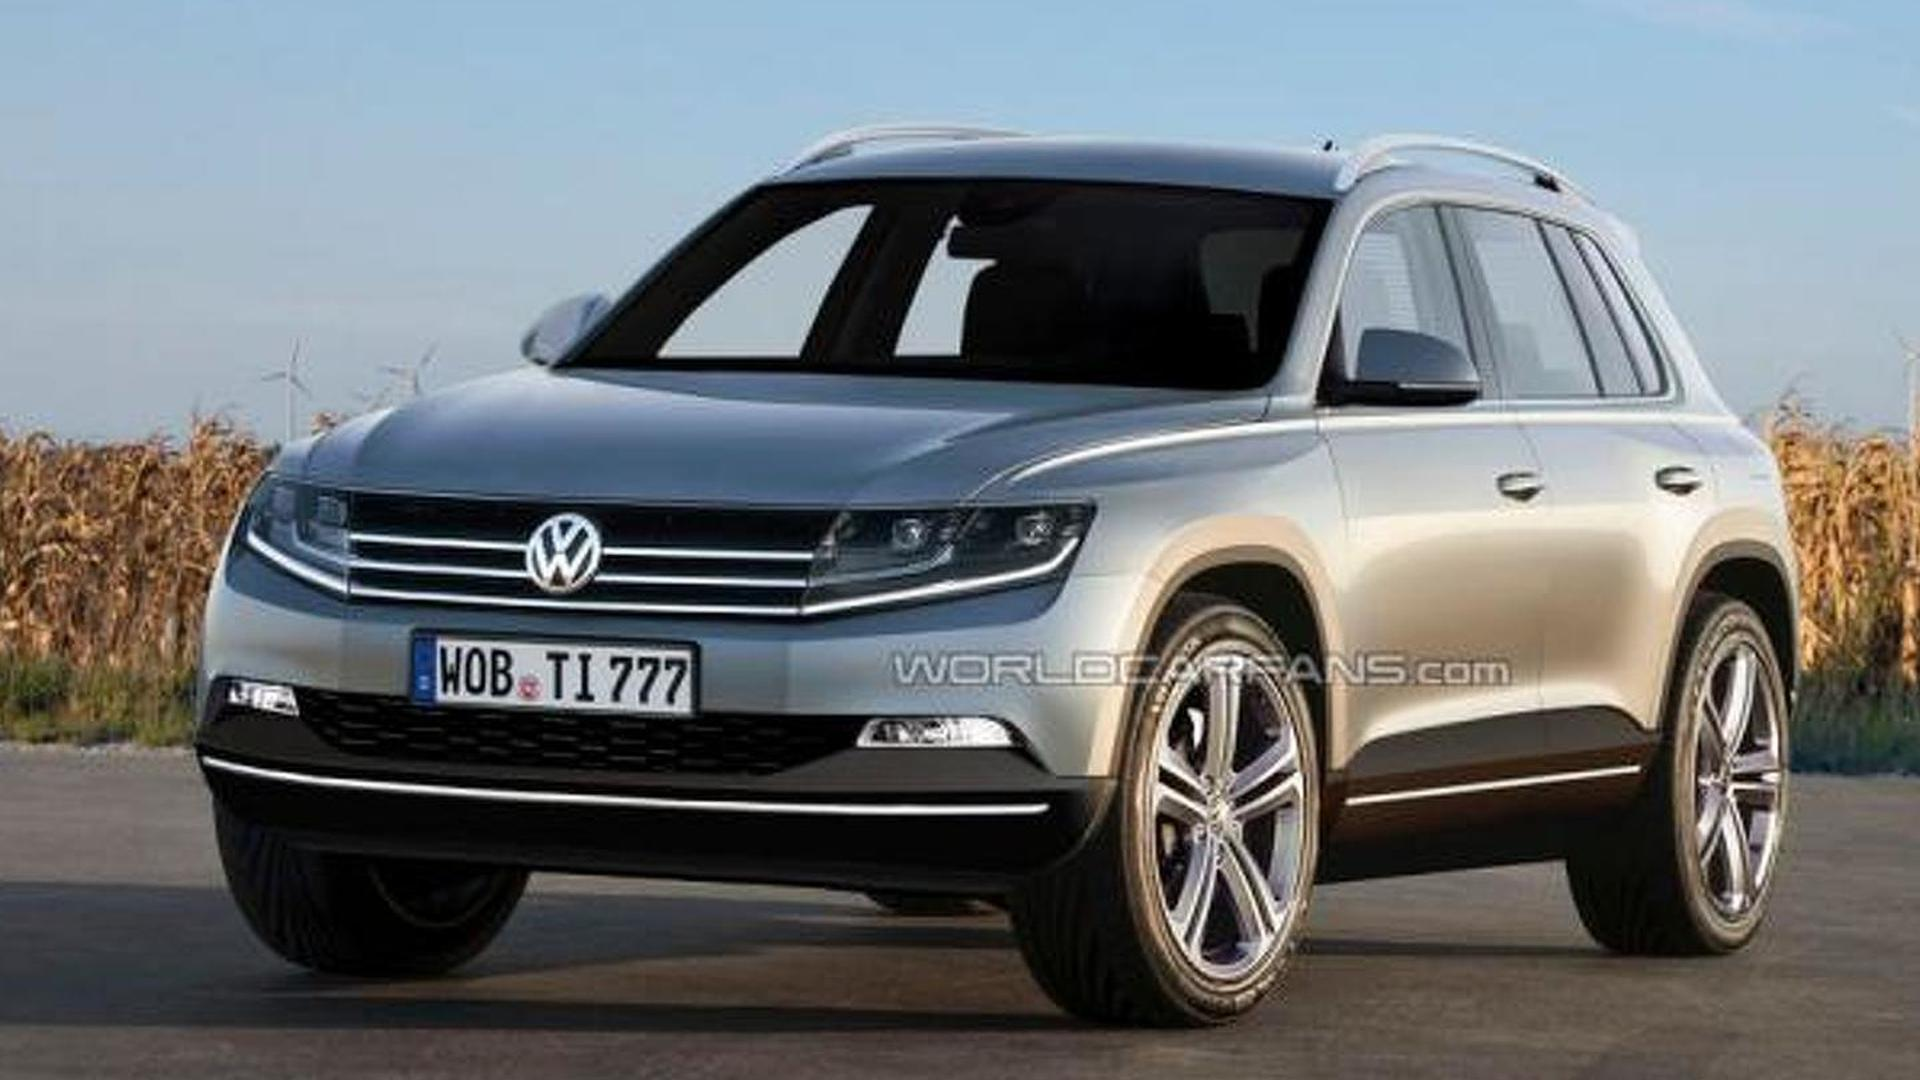 Volkswagen consider adding mid-size SUV to line-up